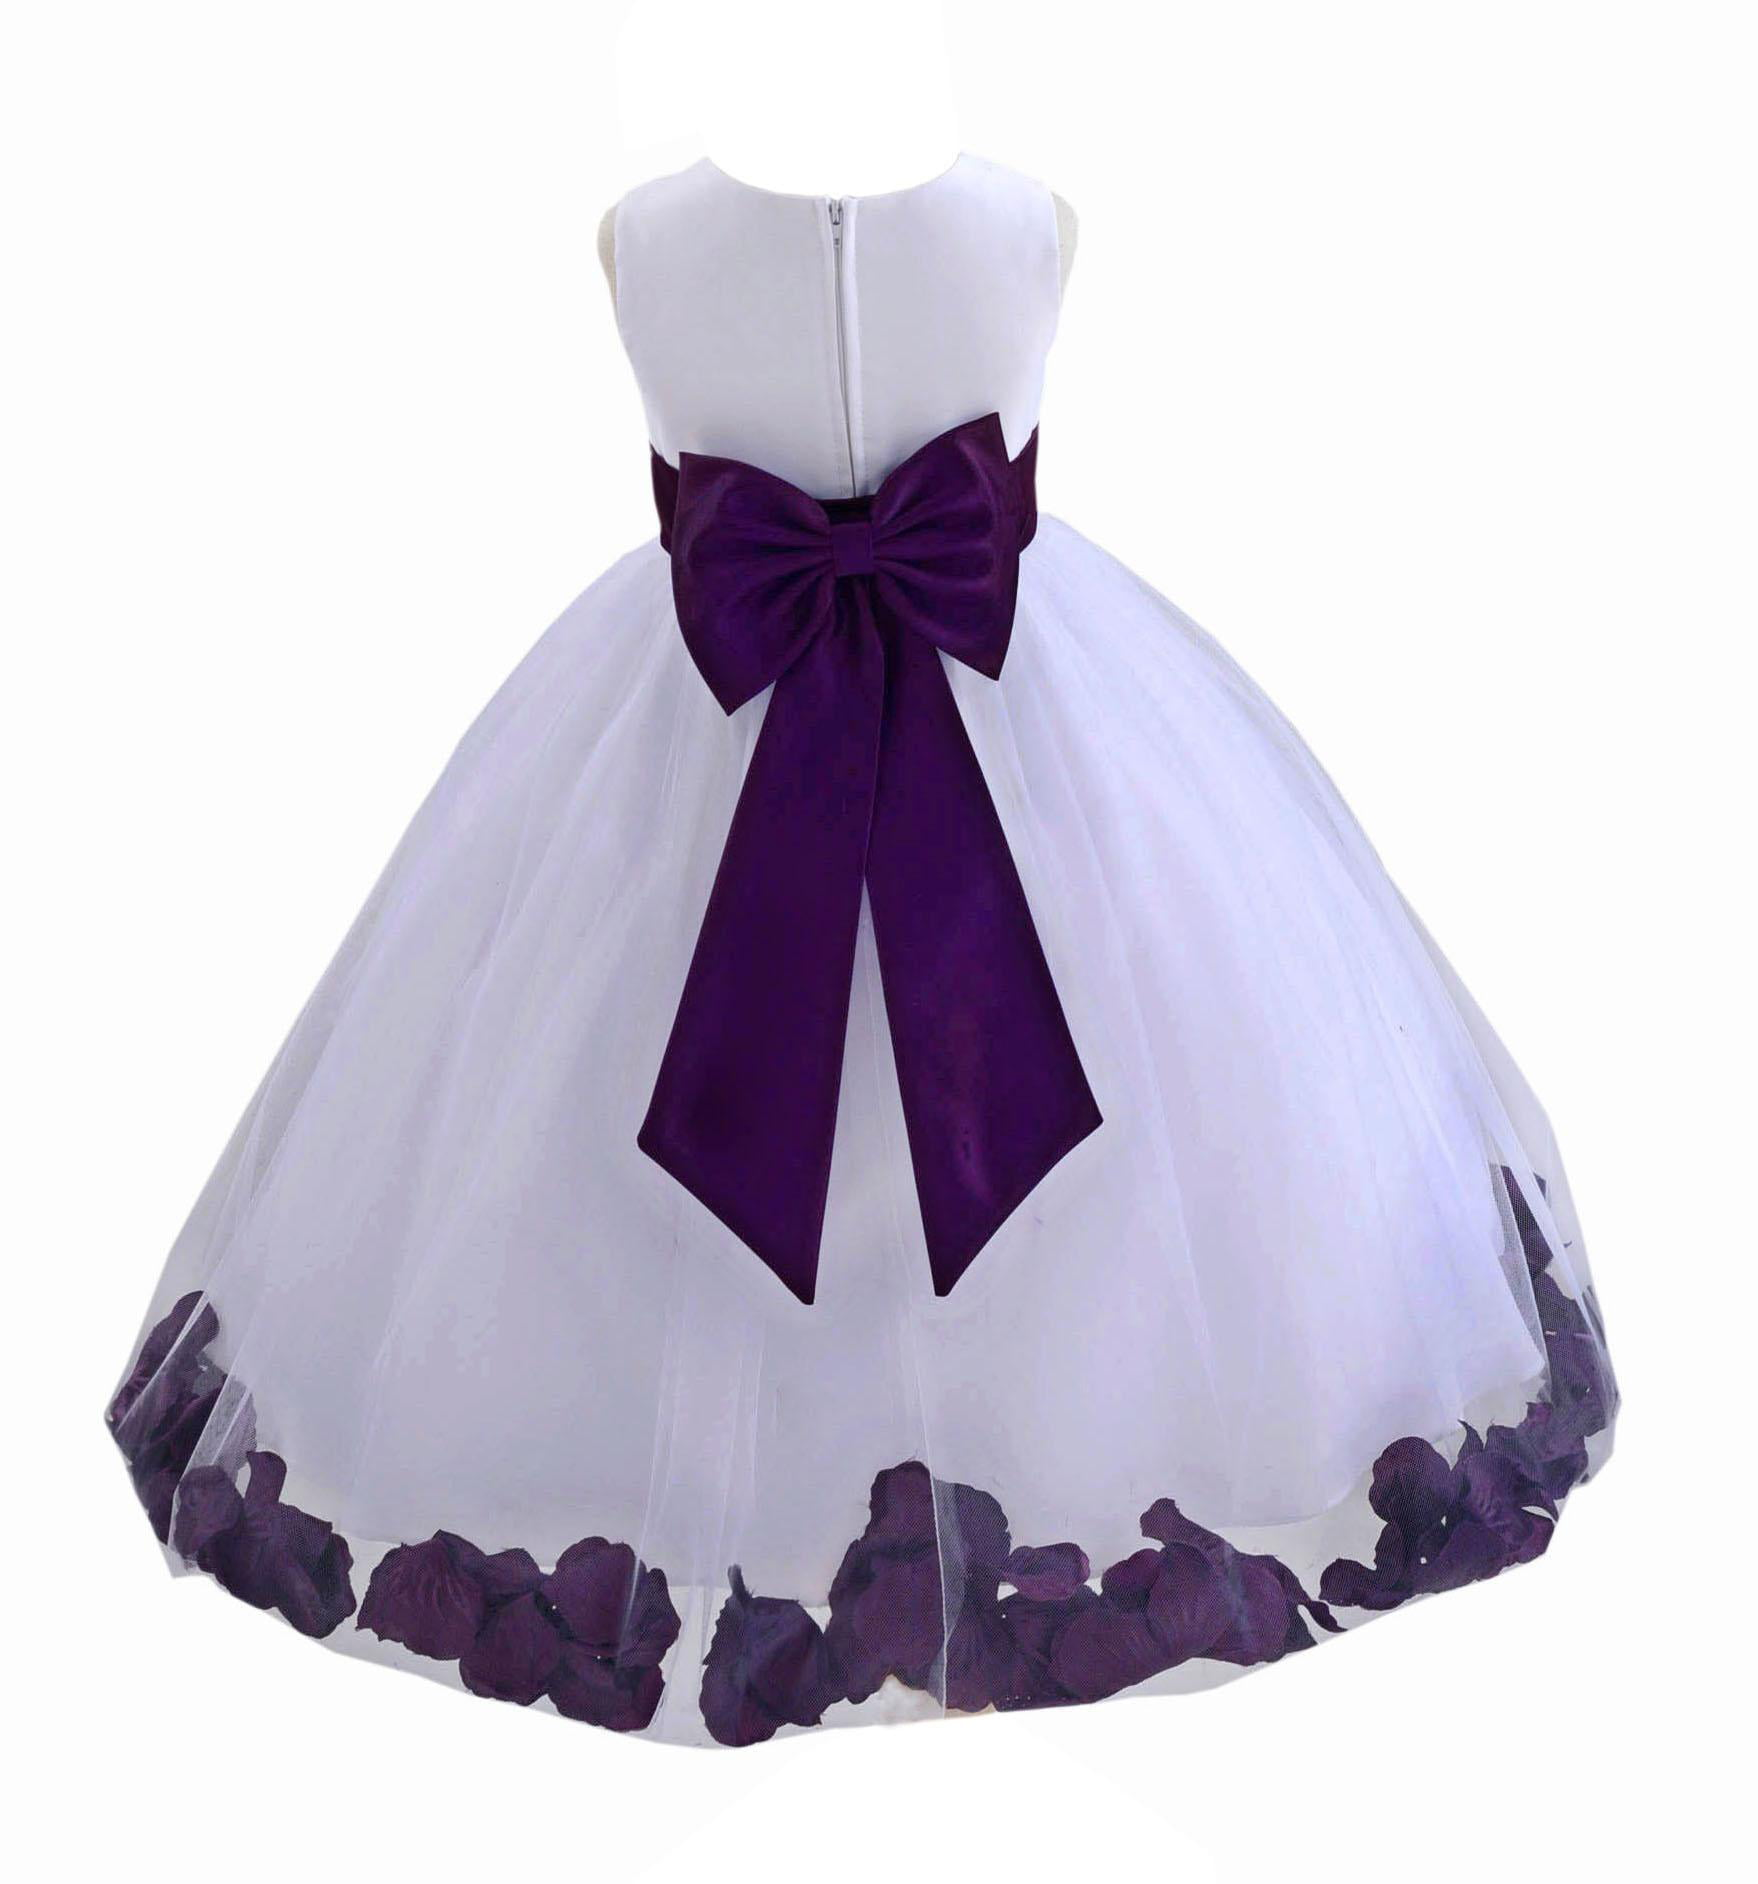 Ekidsbridal - Ekidsbridal Wedding Pageant Rose Petals White Tulle Flower  Girl Dress Toddler Special Occasion 302T purple 4 - Walmart.com c38d7938a